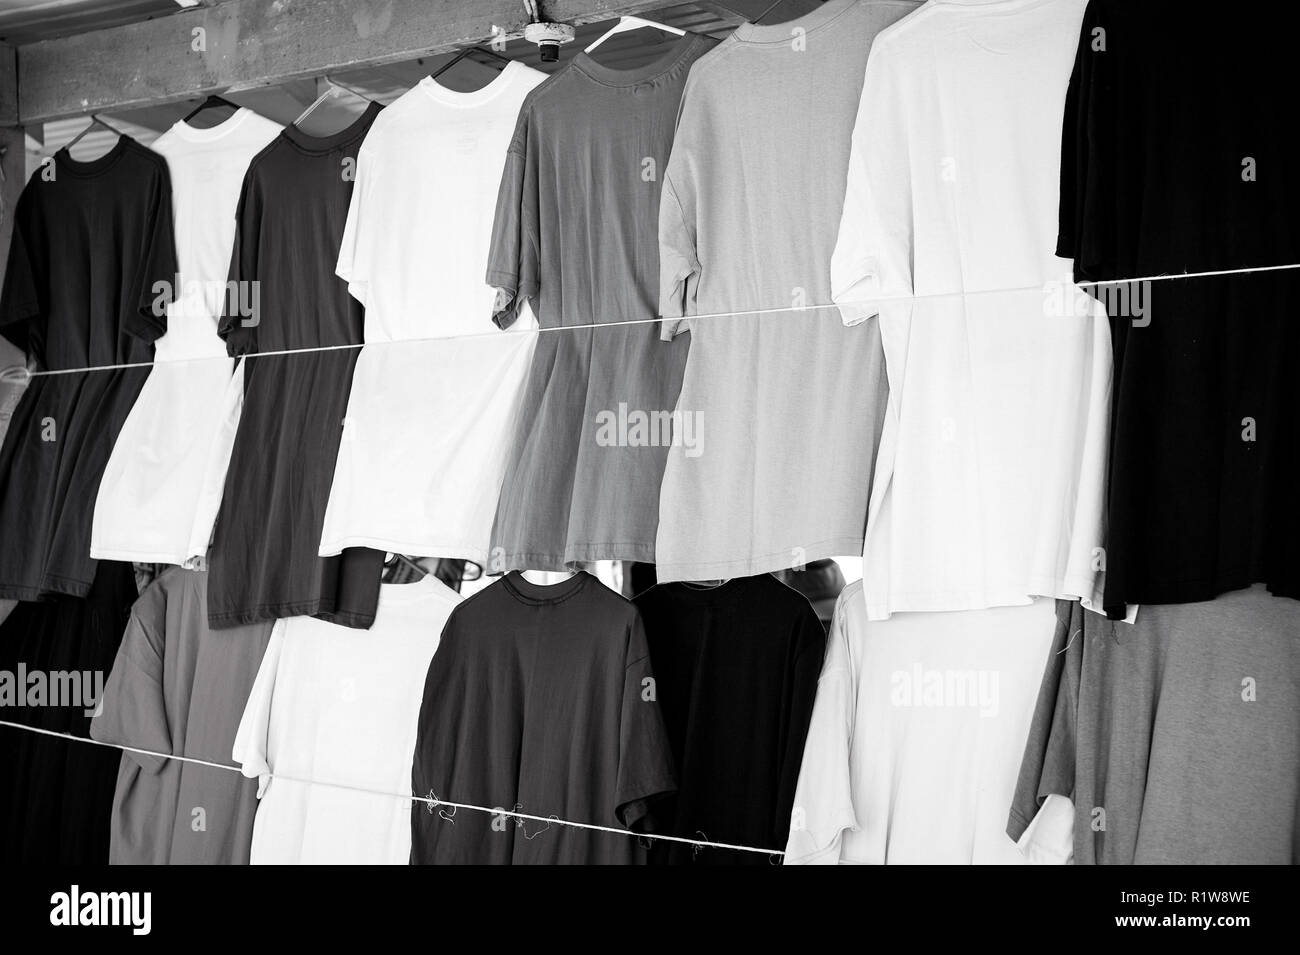 86b86c04d Tshirts hang in local shop or market in castries, st.lucia. Colorful clothes